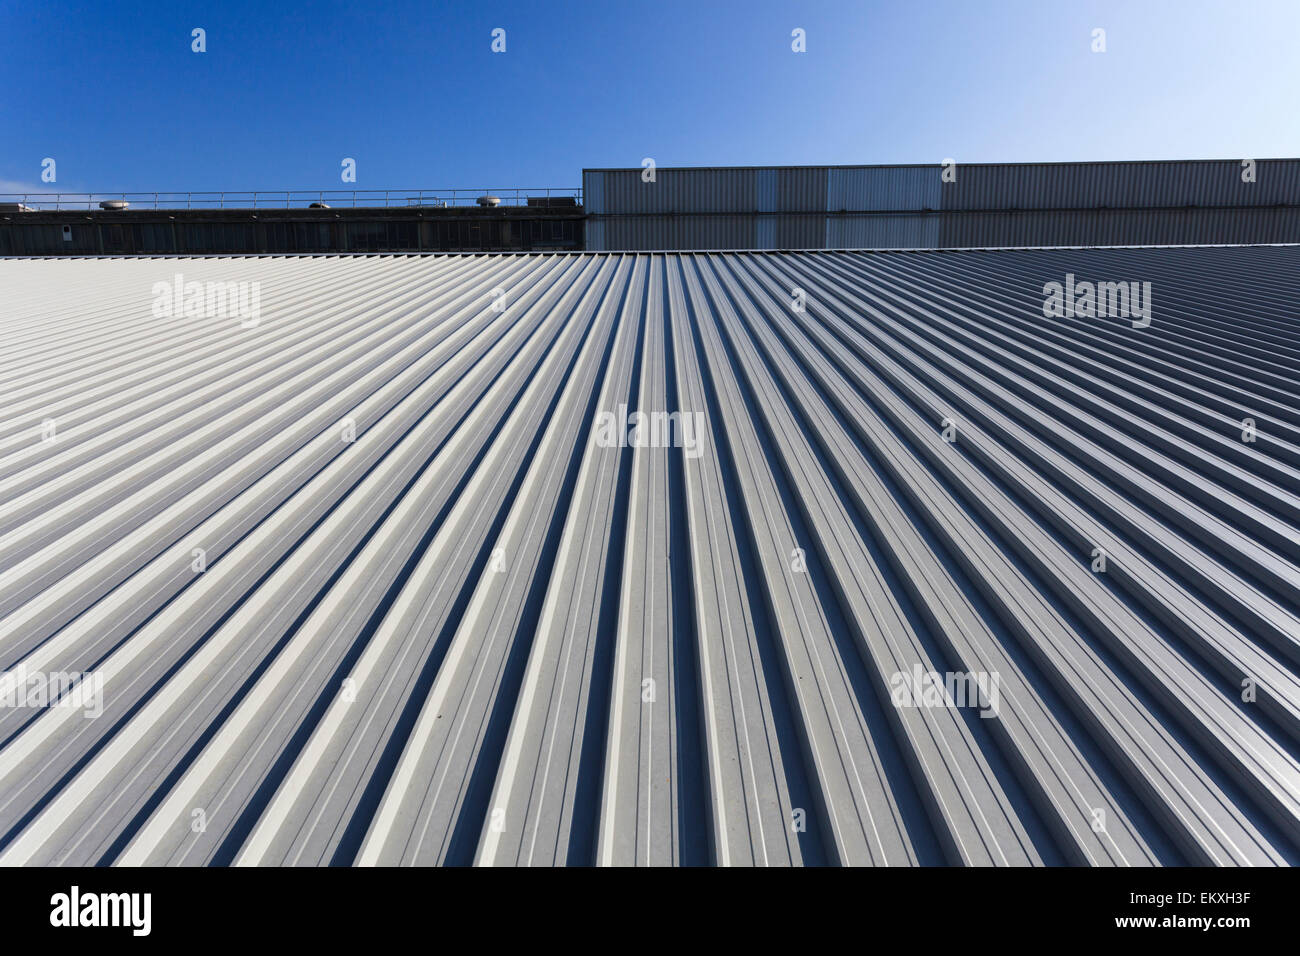 Standing seam roofing with fall arrest blocks and safety wire Stock Photo